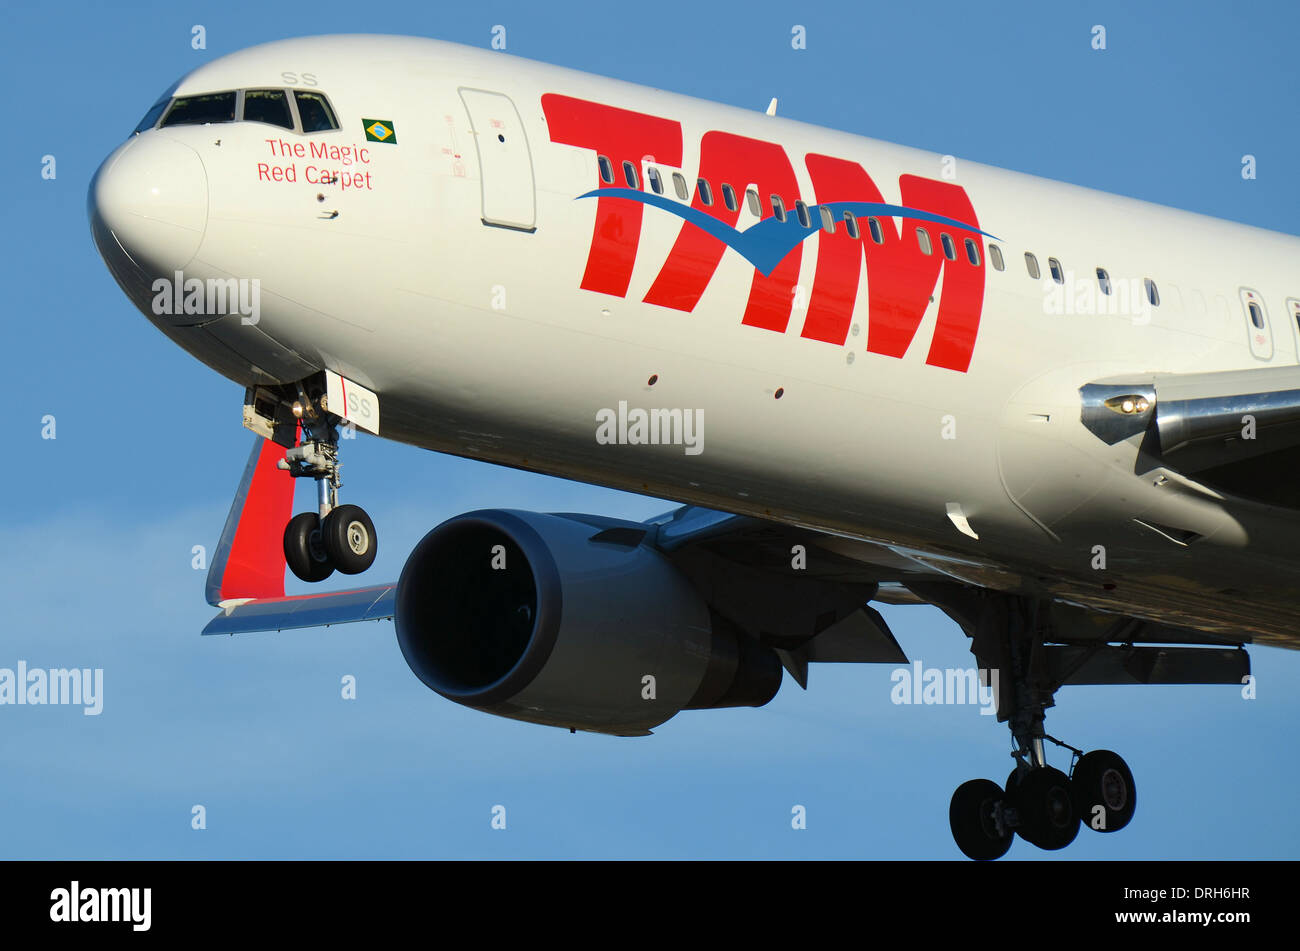 TAM Airlines is the Brazilian brand of LATAM Airlines Group.767 PT-MSS pictured here is landing at London Heathrow. The magic red carpet - Stock Image